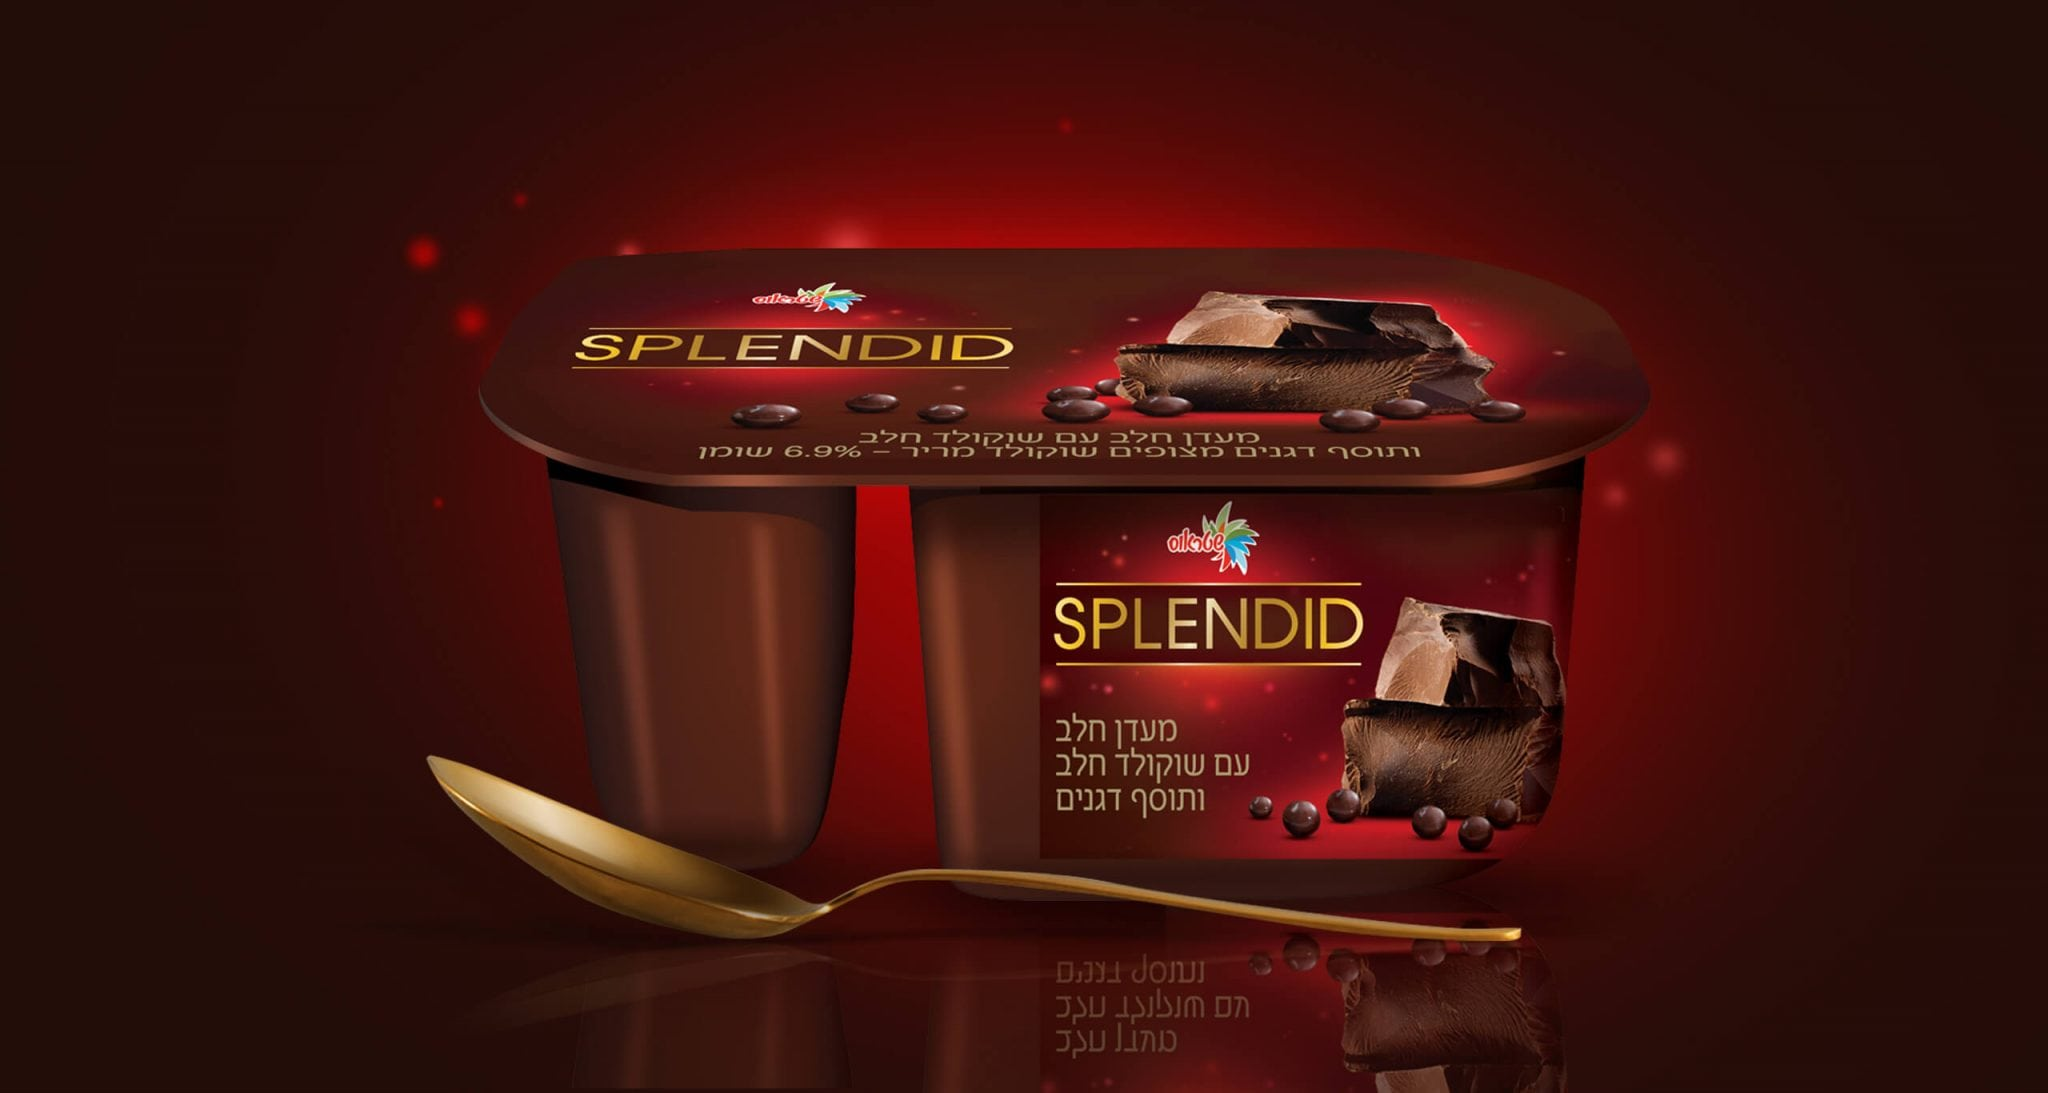 web_splendid_mousse_2560x1366_10